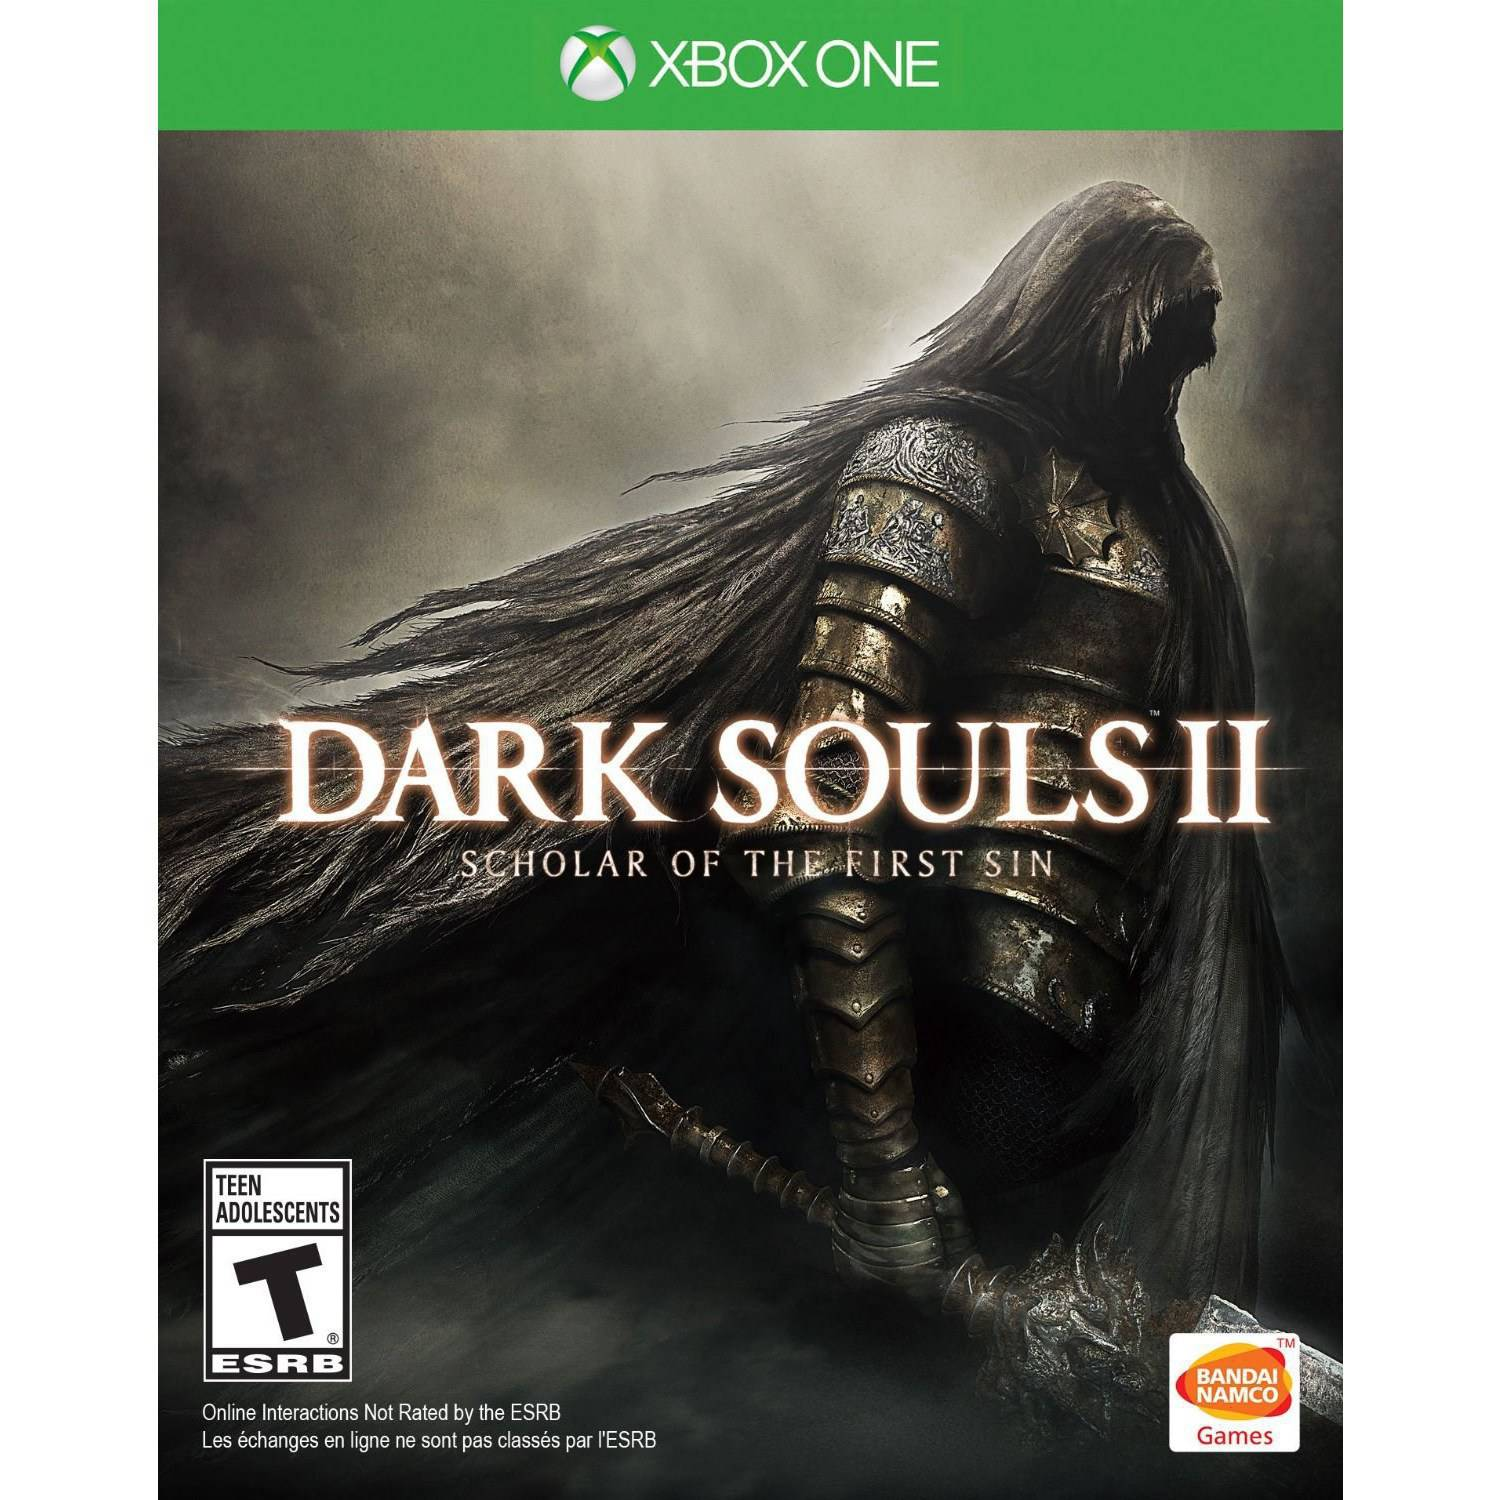 Dark Souls II Scholar of the First Sin (Xbox One) - Pre-Owned